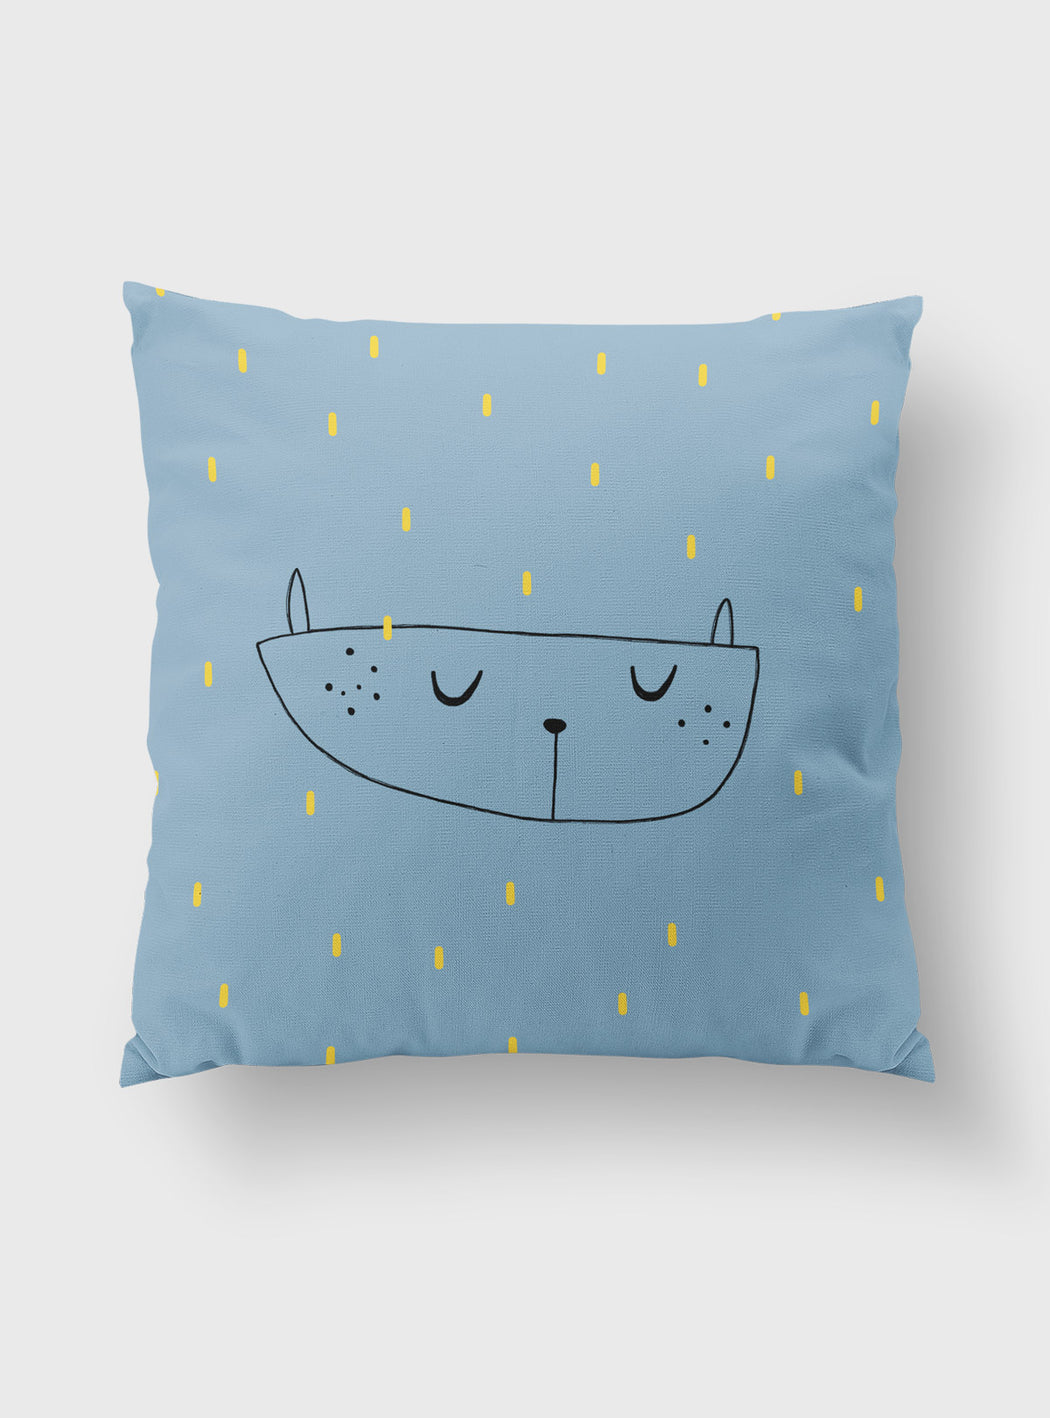 Rain decorative pillowcase 45 x 45 cms